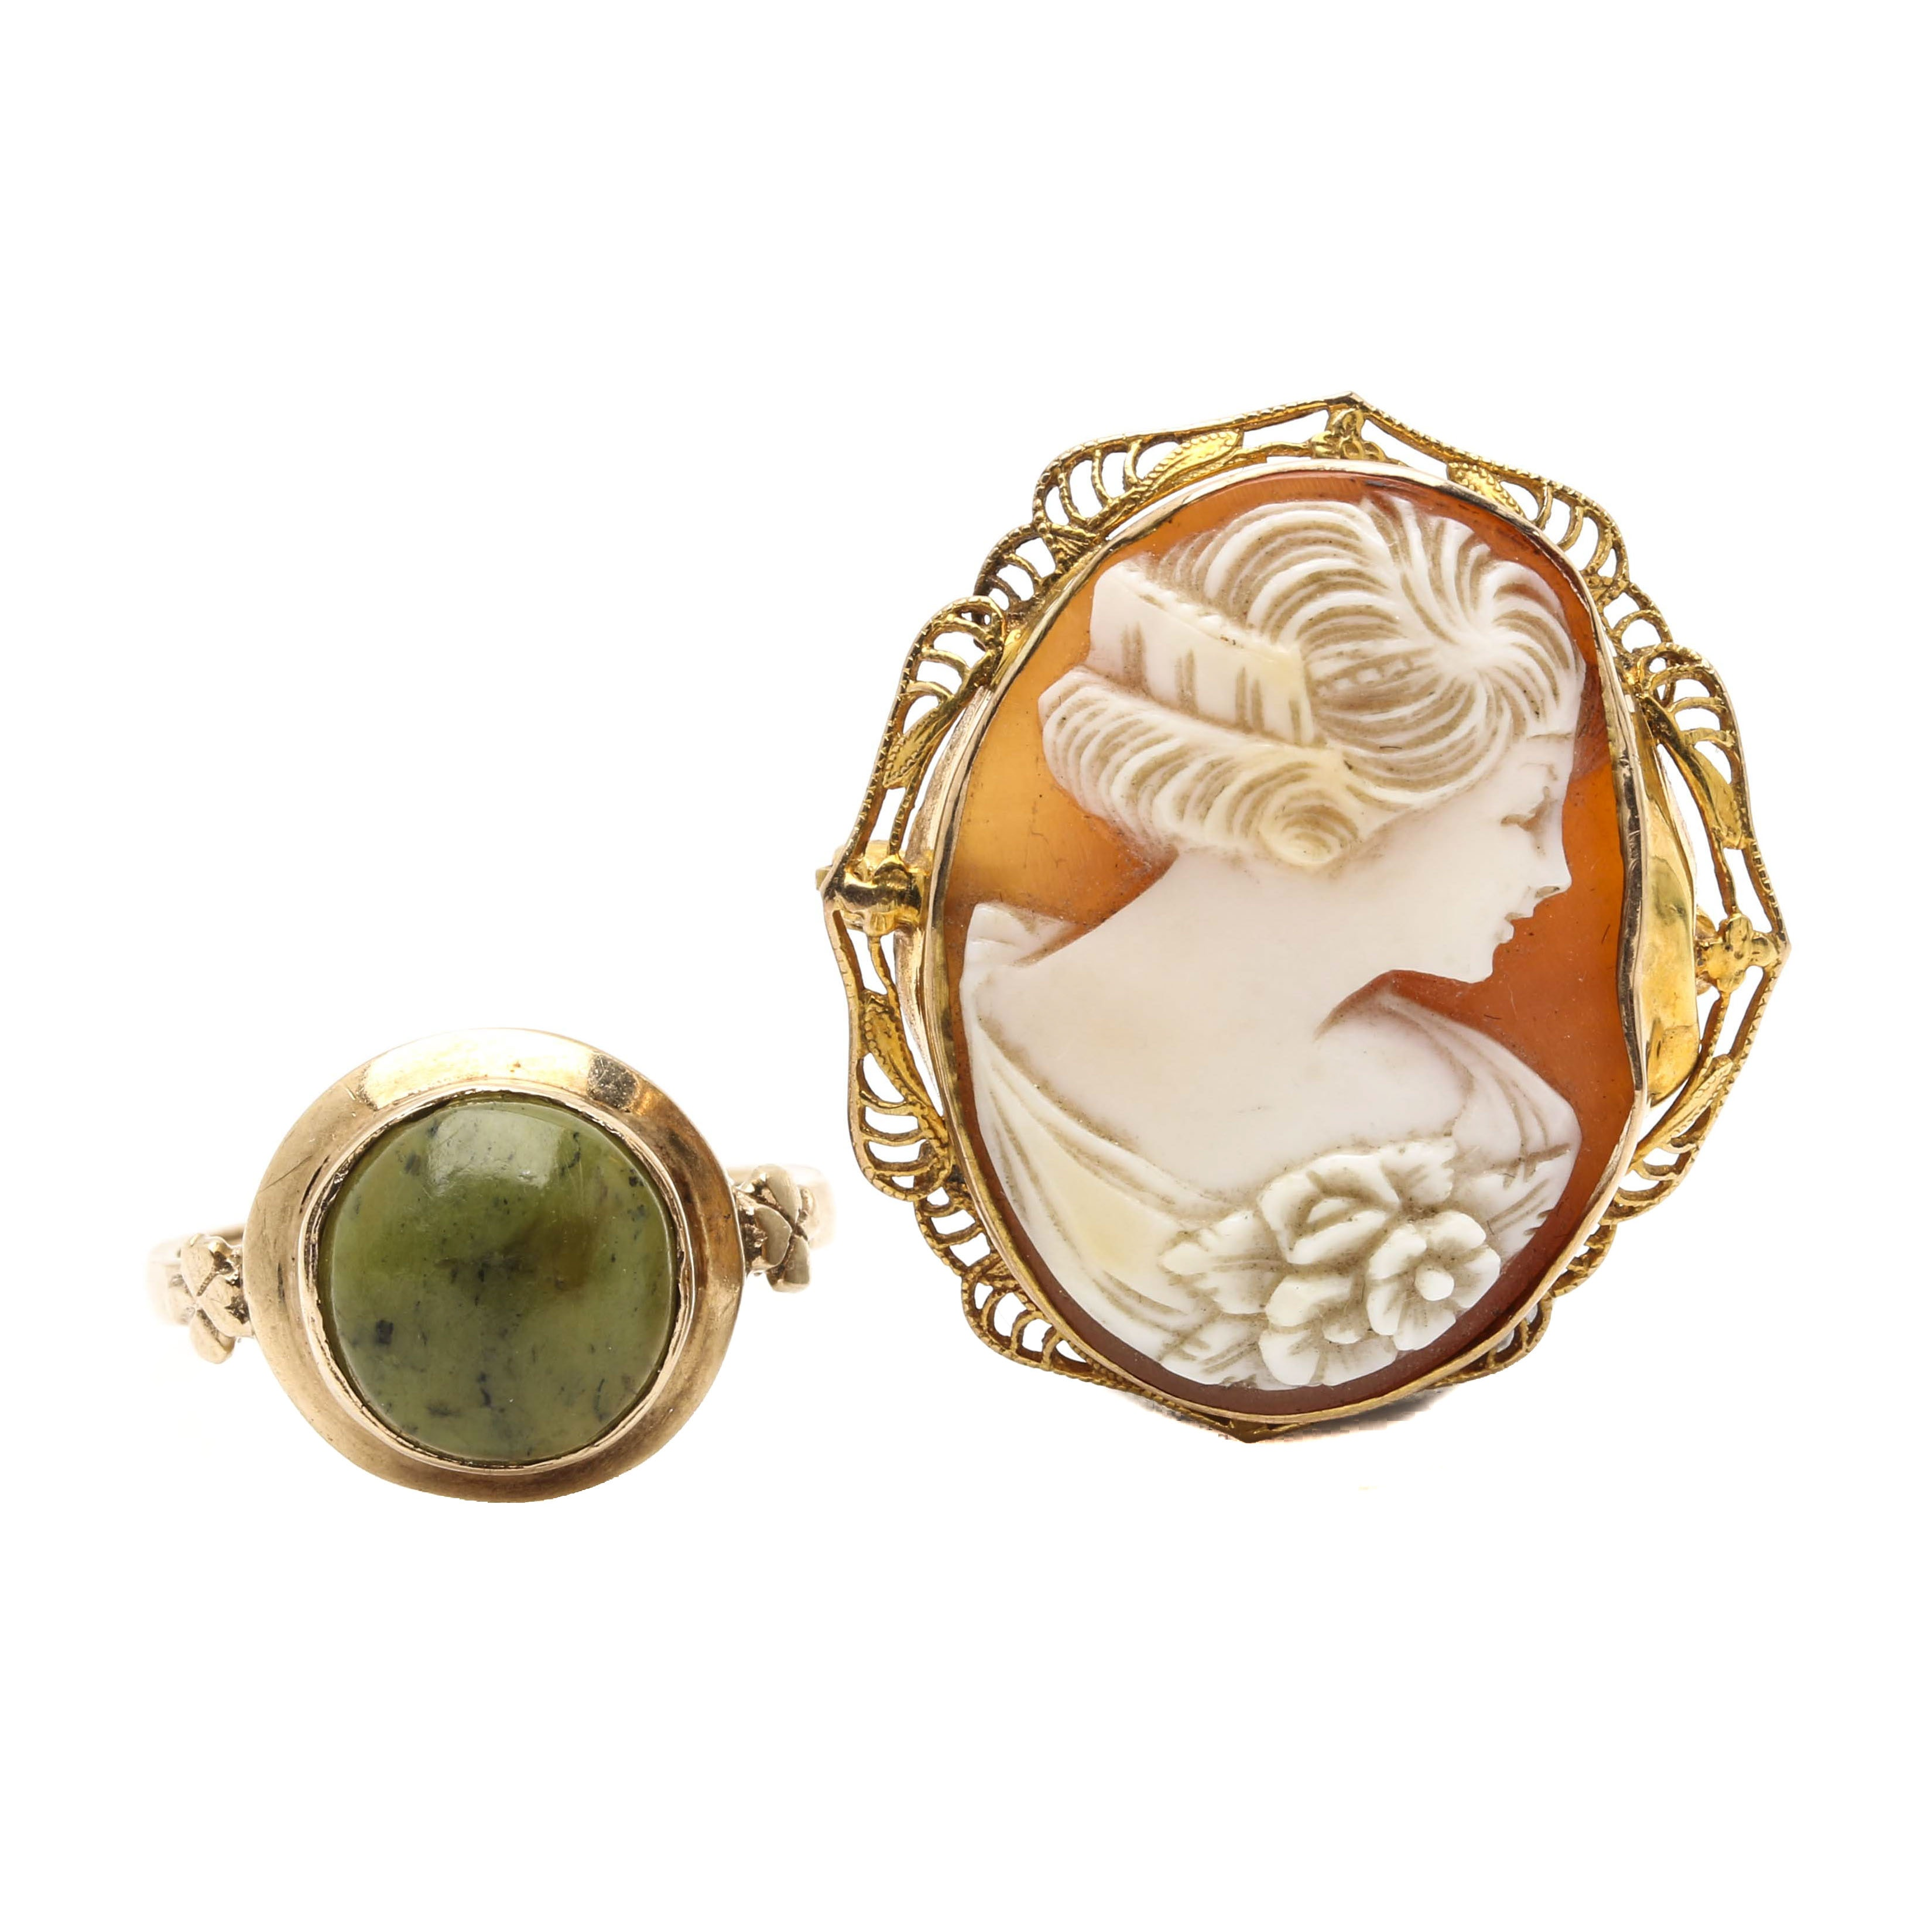 Selection of 9K and 10K Yellow Gold Serpentine Ring and Cameo Brooch